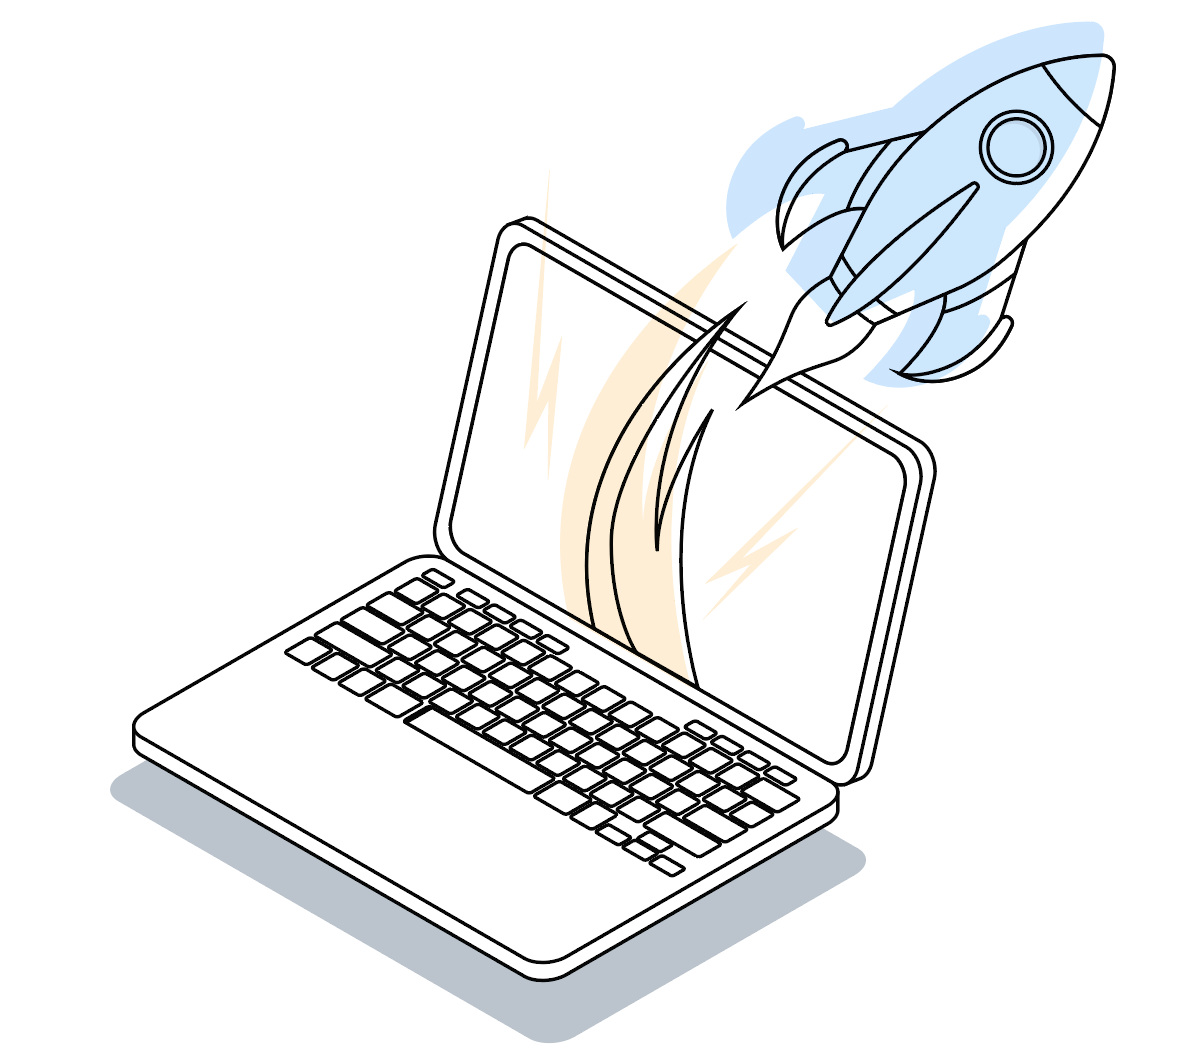 Decorative image of rocket launching from laptop. Rocket is blue with yellow flames. Laptop is black and white.